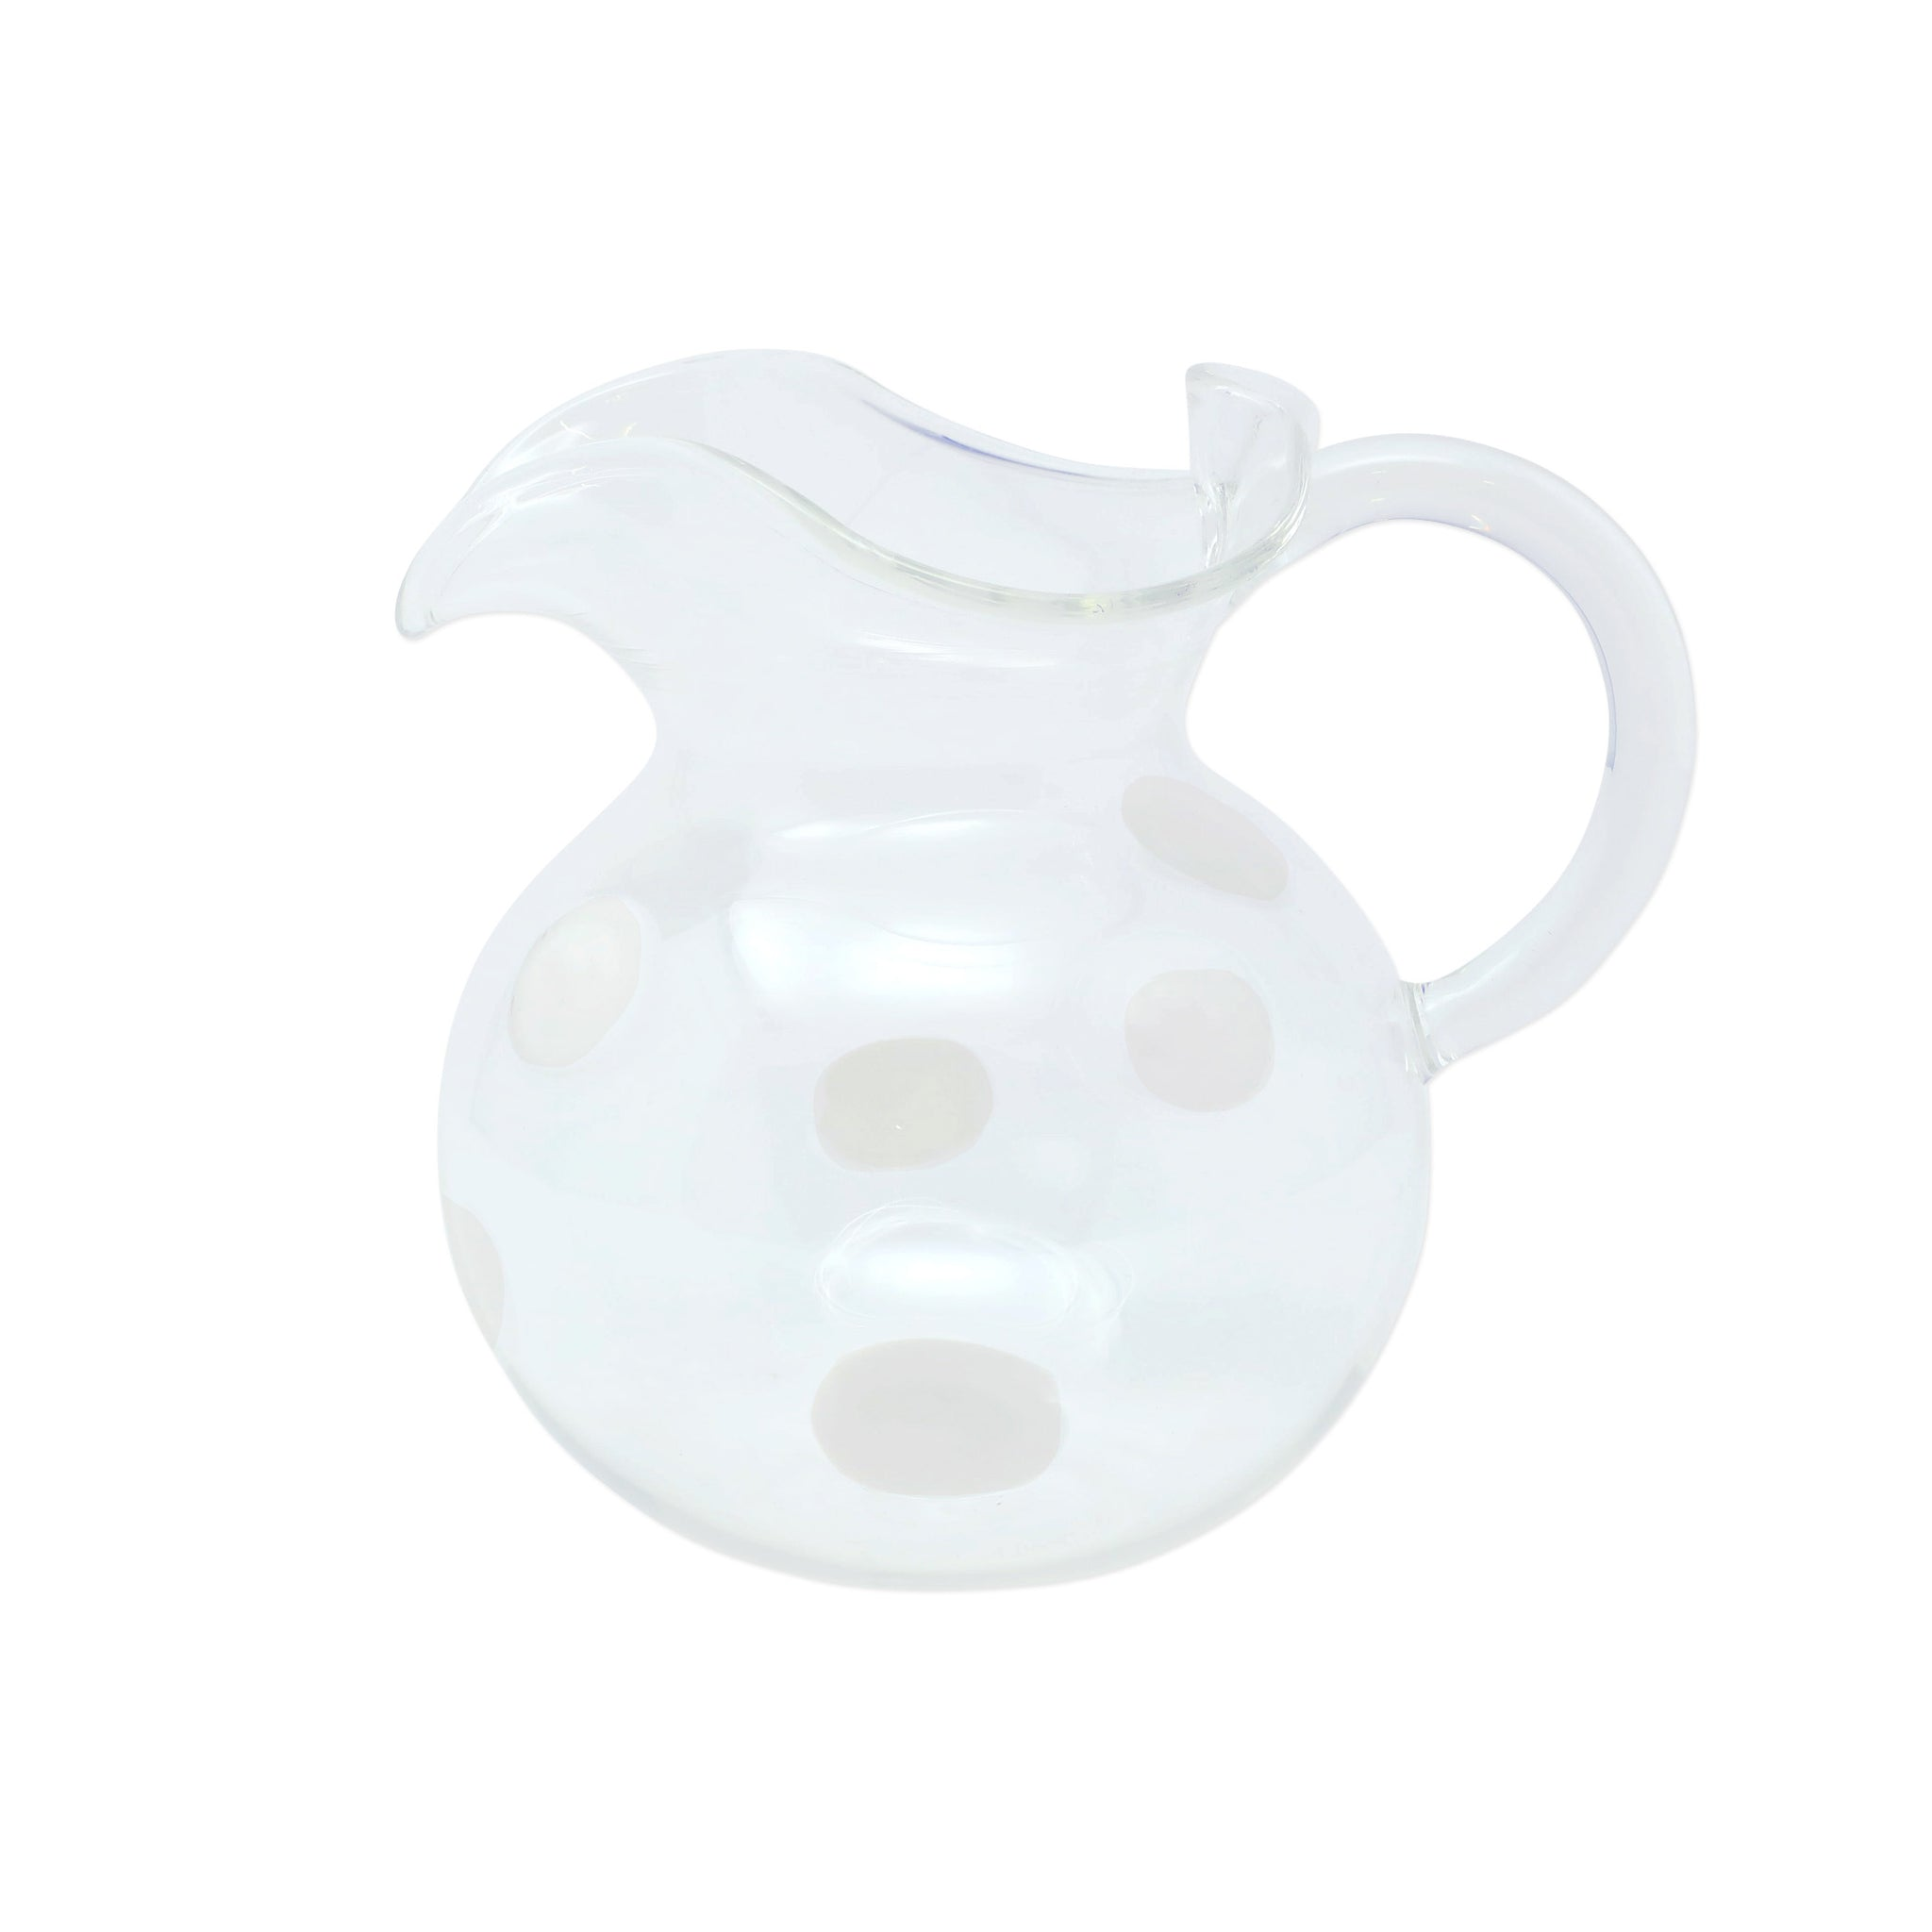 Drop Three Spout Pitcher - White